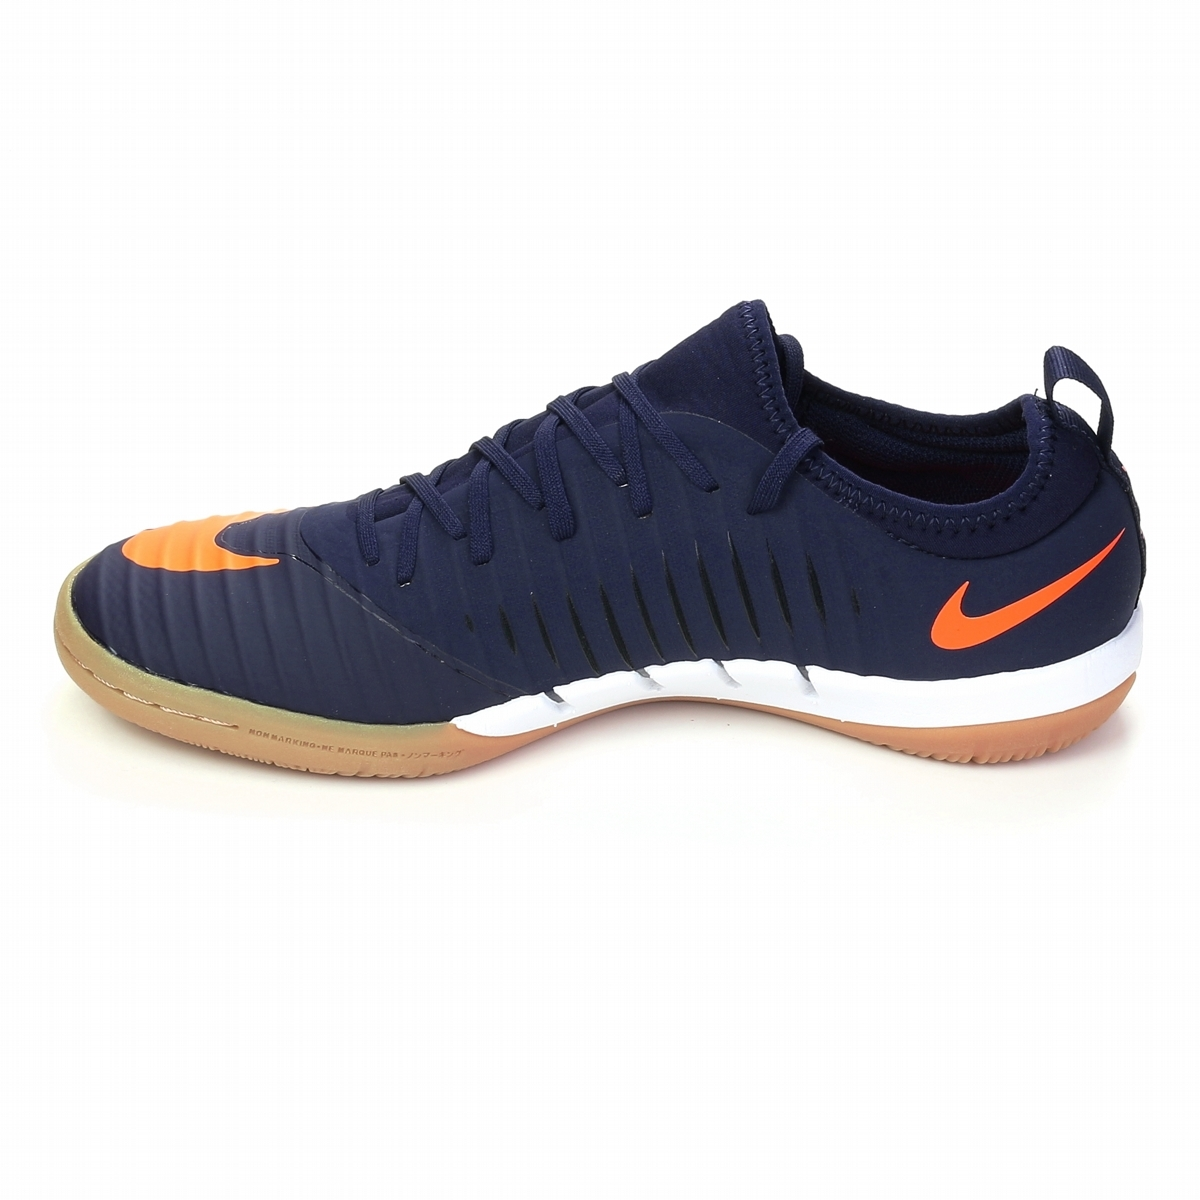 purchase cheap 180ca f2846 Nike MercurialX Finale II IC Indoor Soccer Shoes (Purple Dynasty/Bright  Citrus)